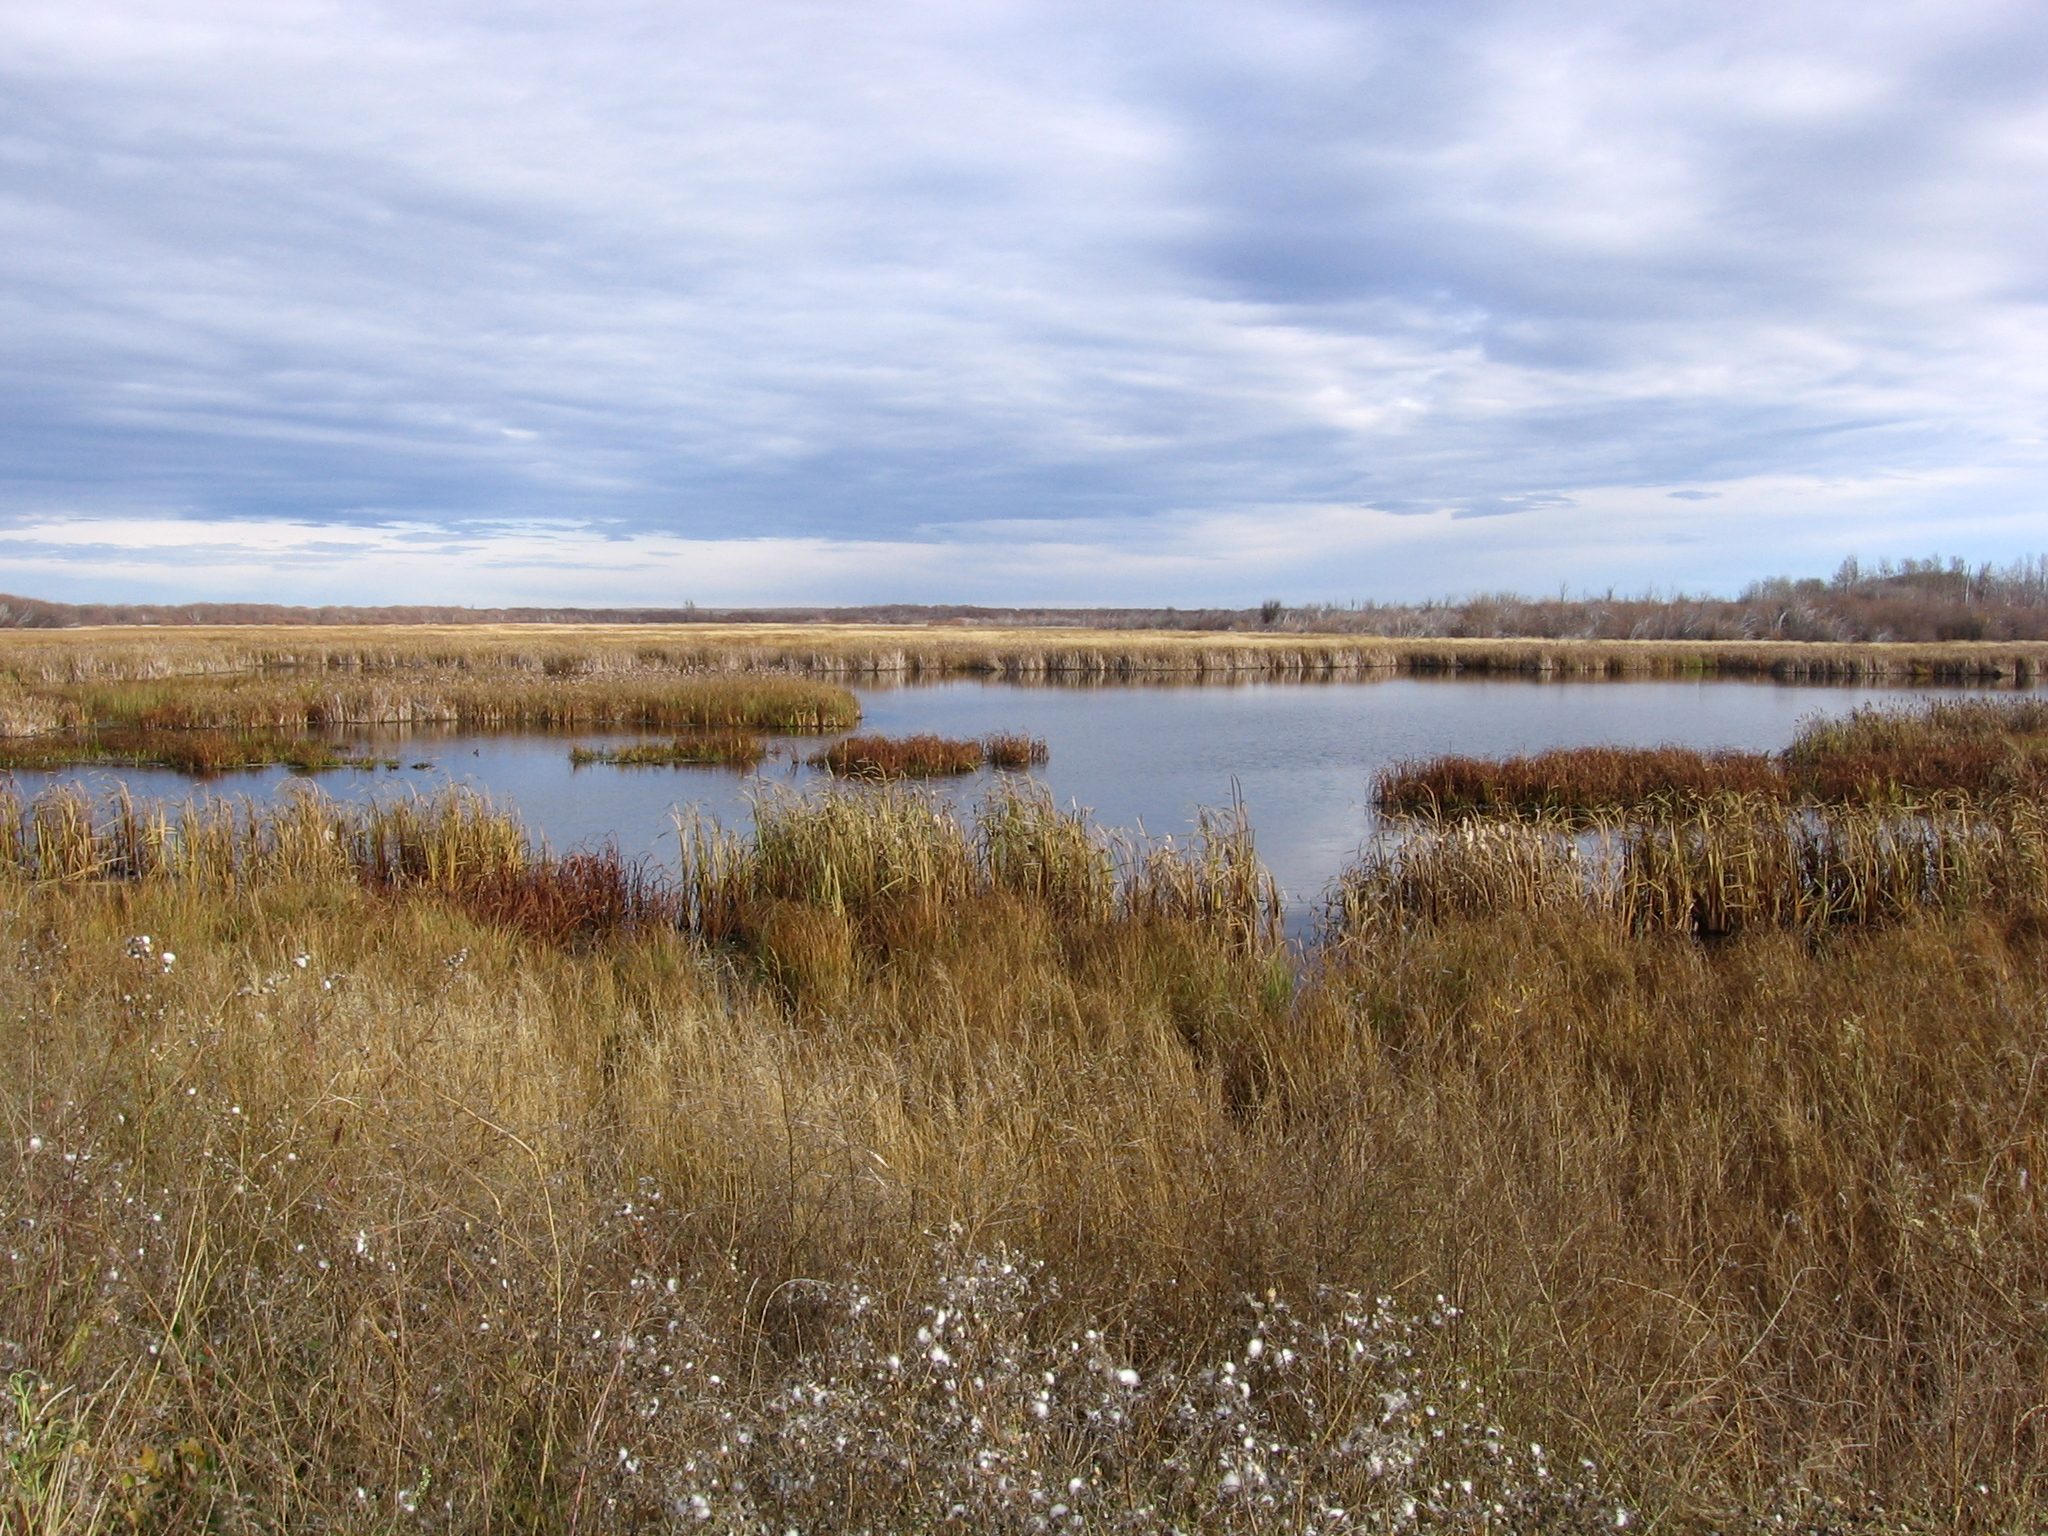 Pengrowth_6-28 large marsh.jpg